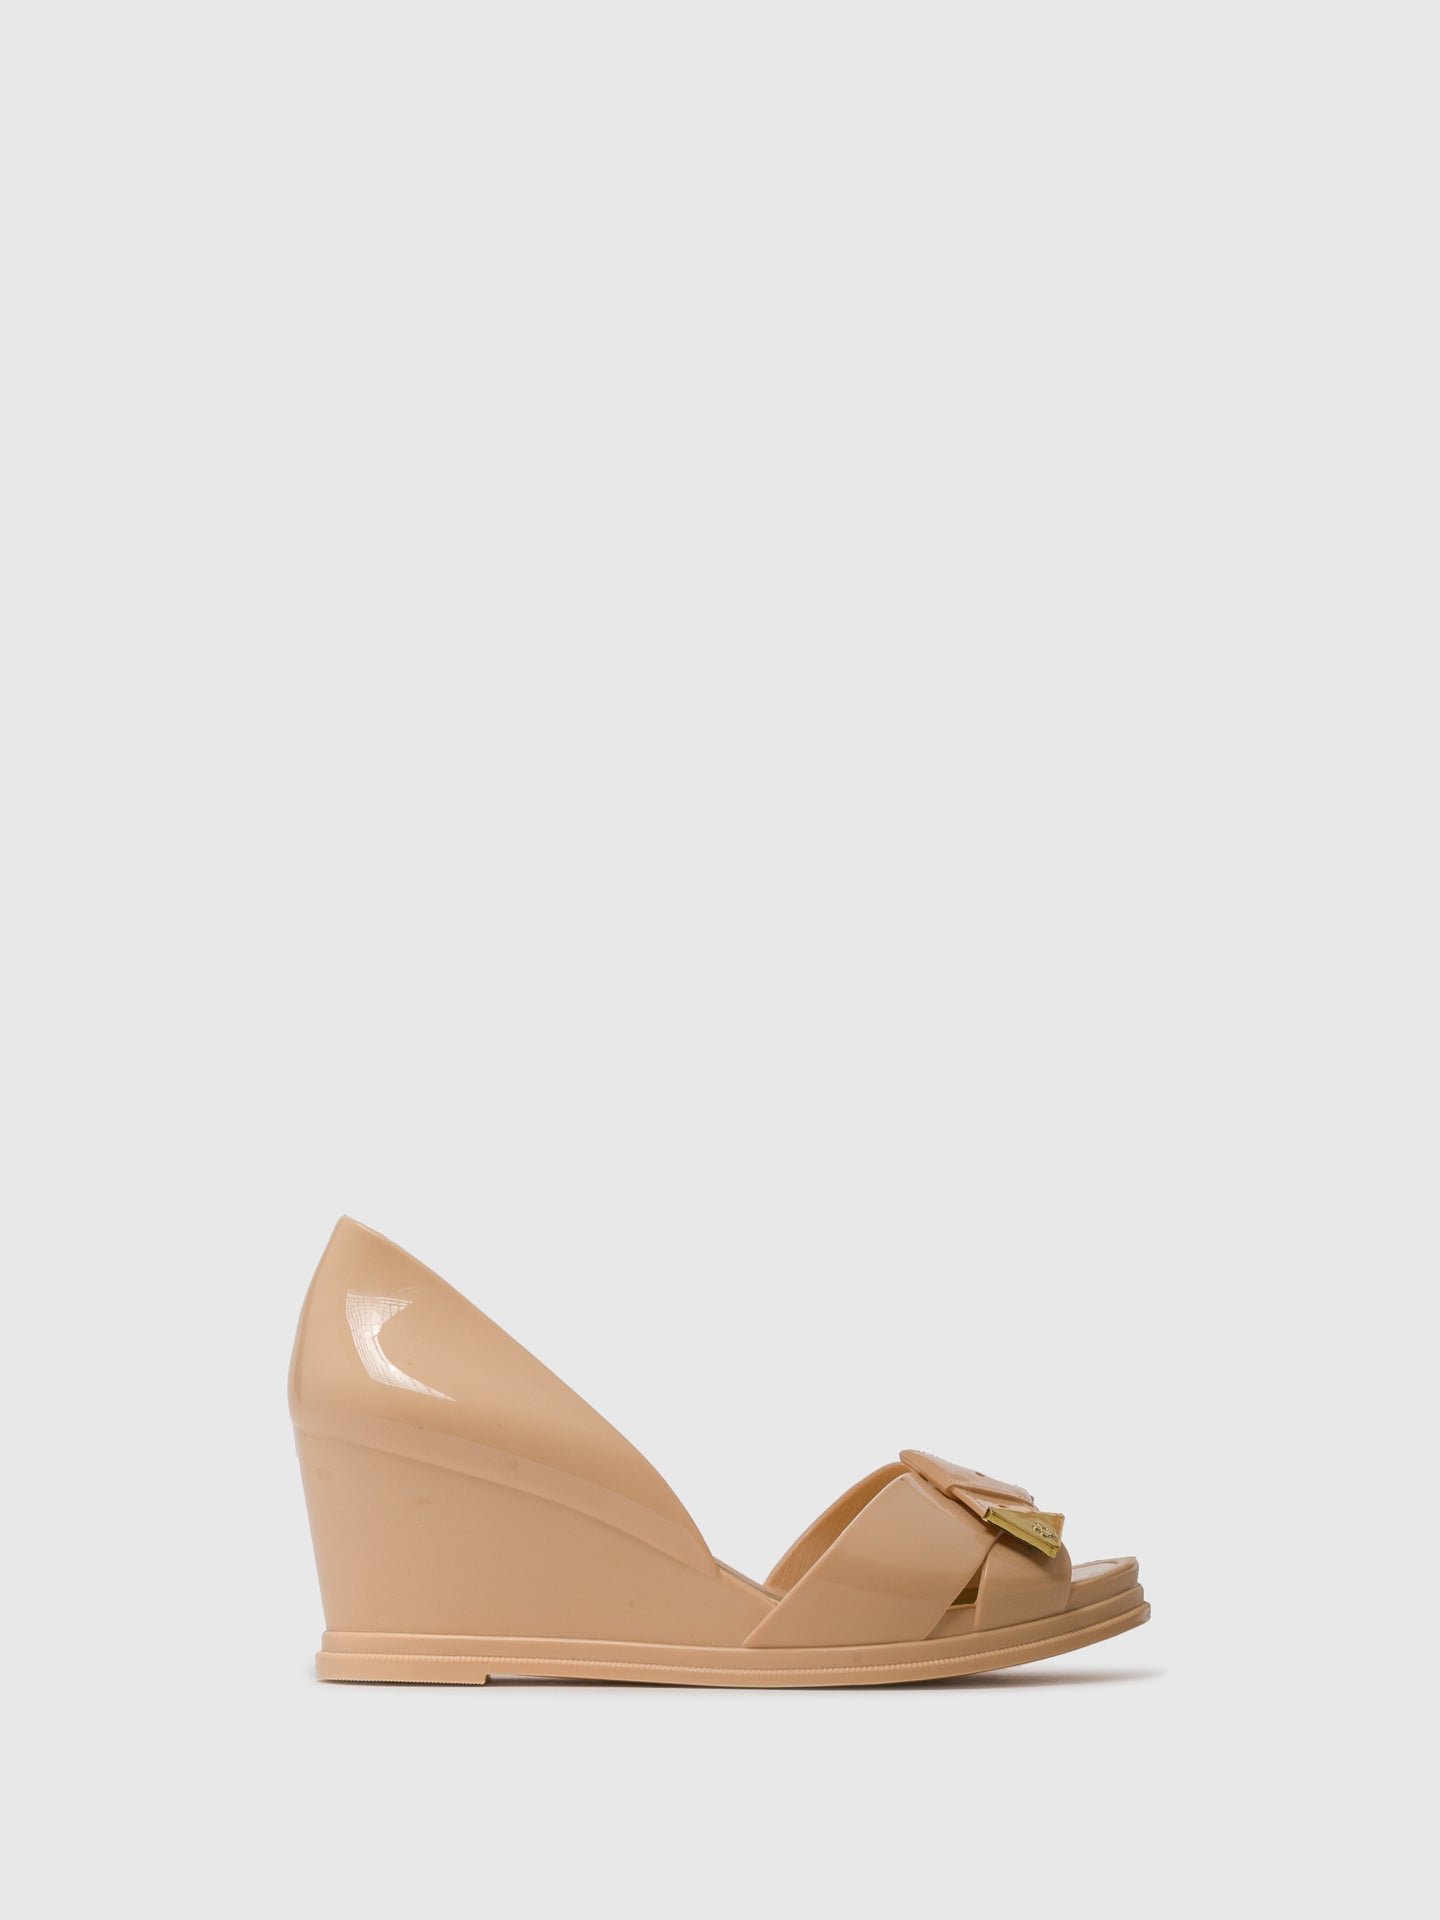 PETITE JOLIE by PARODI BlanchedAlmond	 Wedge Sandals